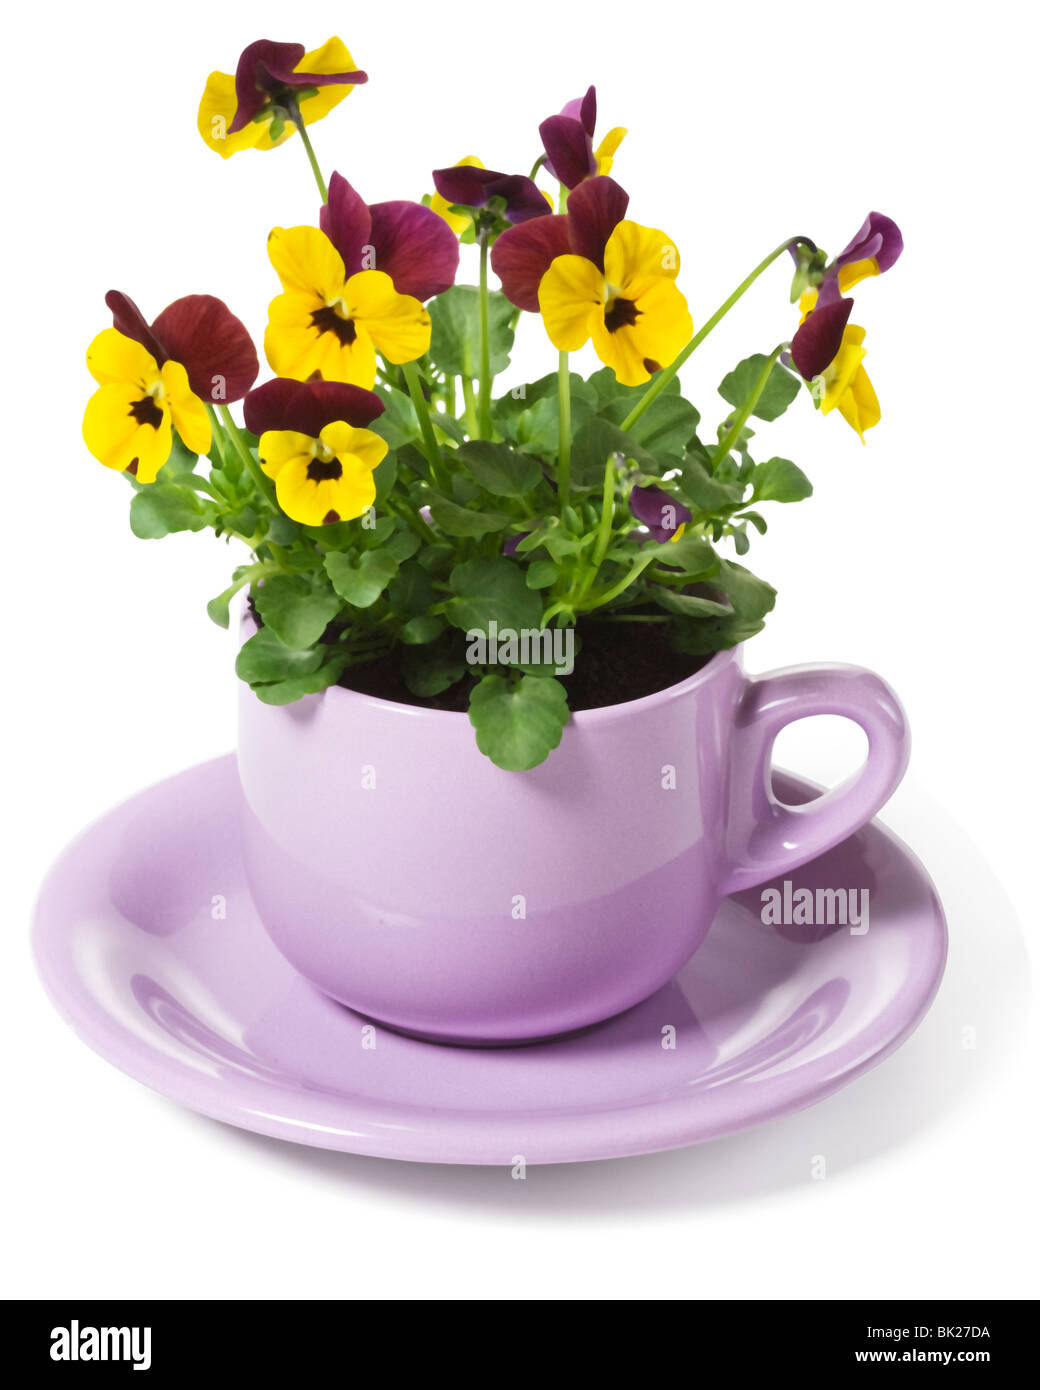 Yellow Pansies Planted in a Cup on White Background - Stock Image